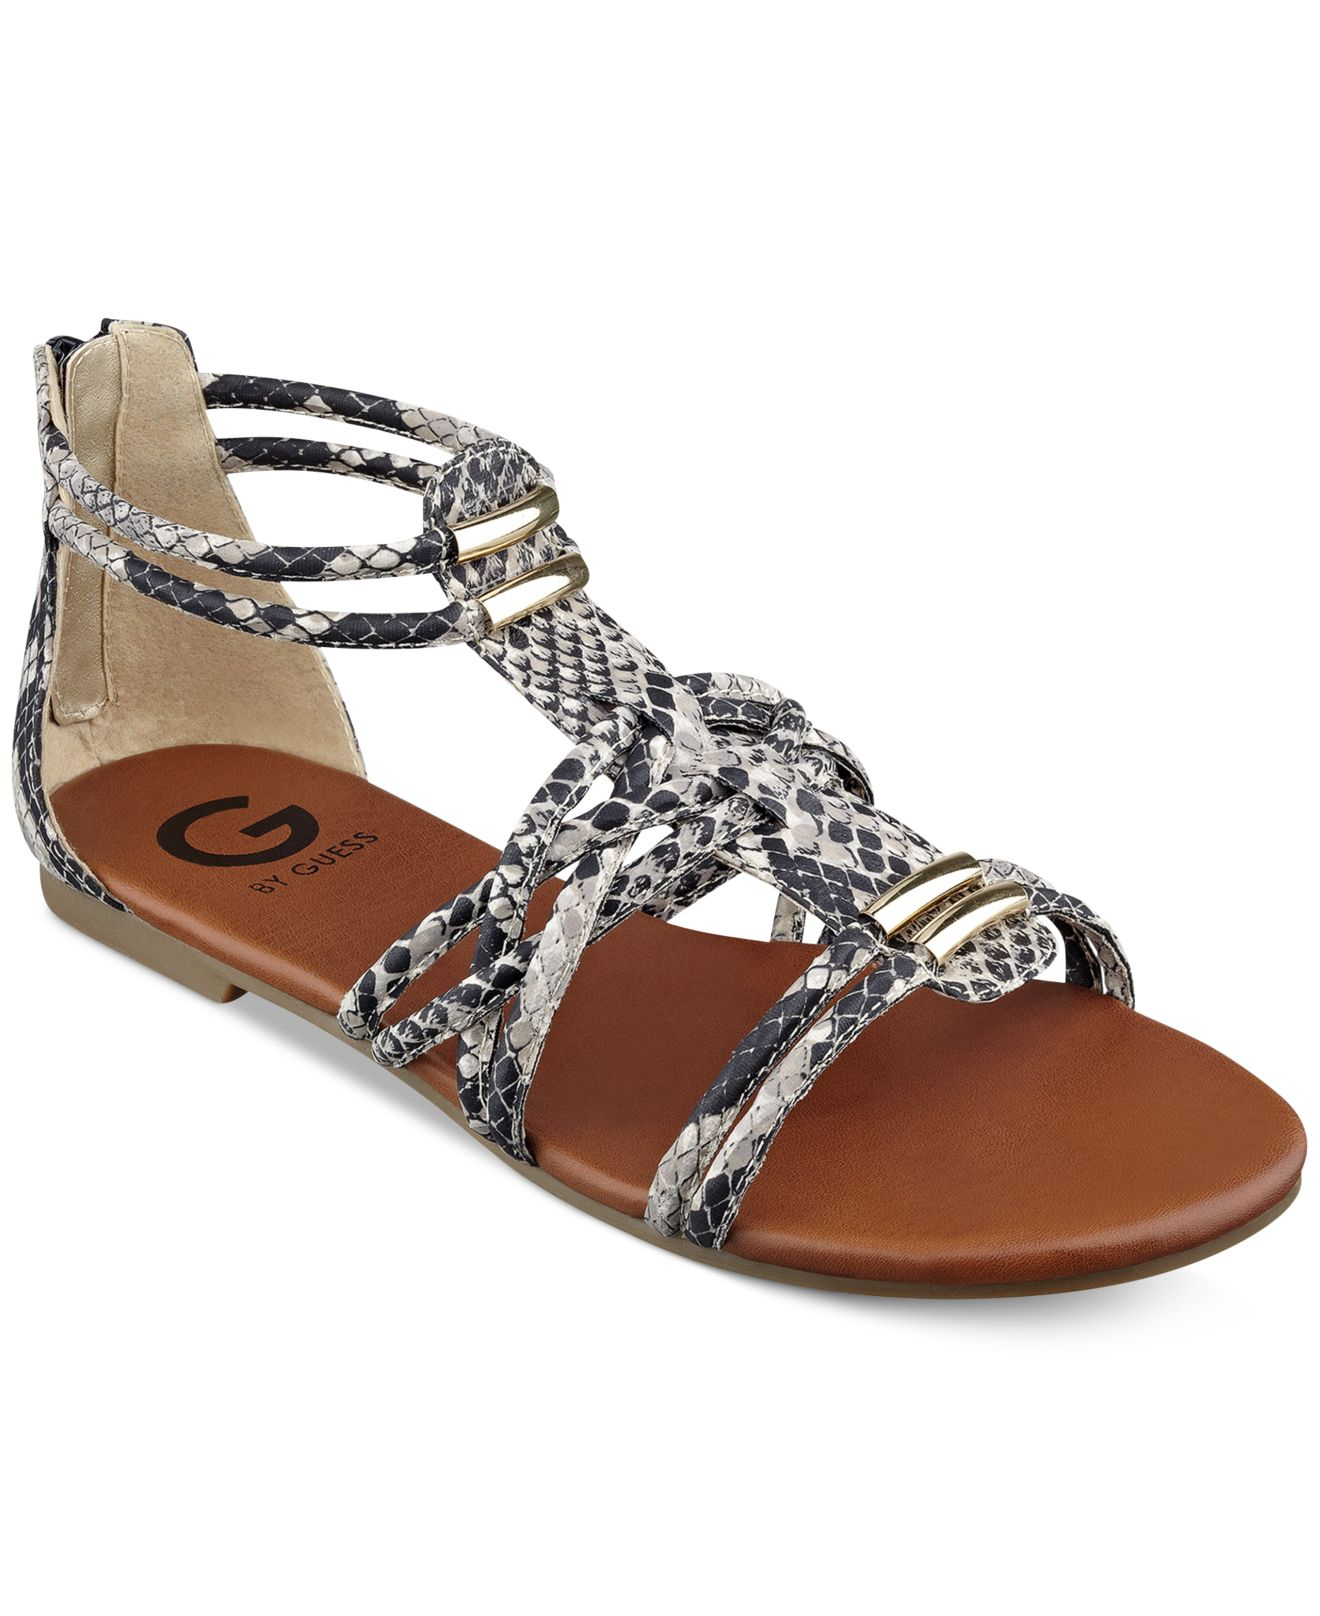 Luxury P26 Womens Roman Gladiator Sandals Flats Thongs Shoes WRhinestones P26 When Comfort Matters Rhinestone Embellished Sandals Great For Everyday Beautiful Design Superior Comfort Additional Details  Department